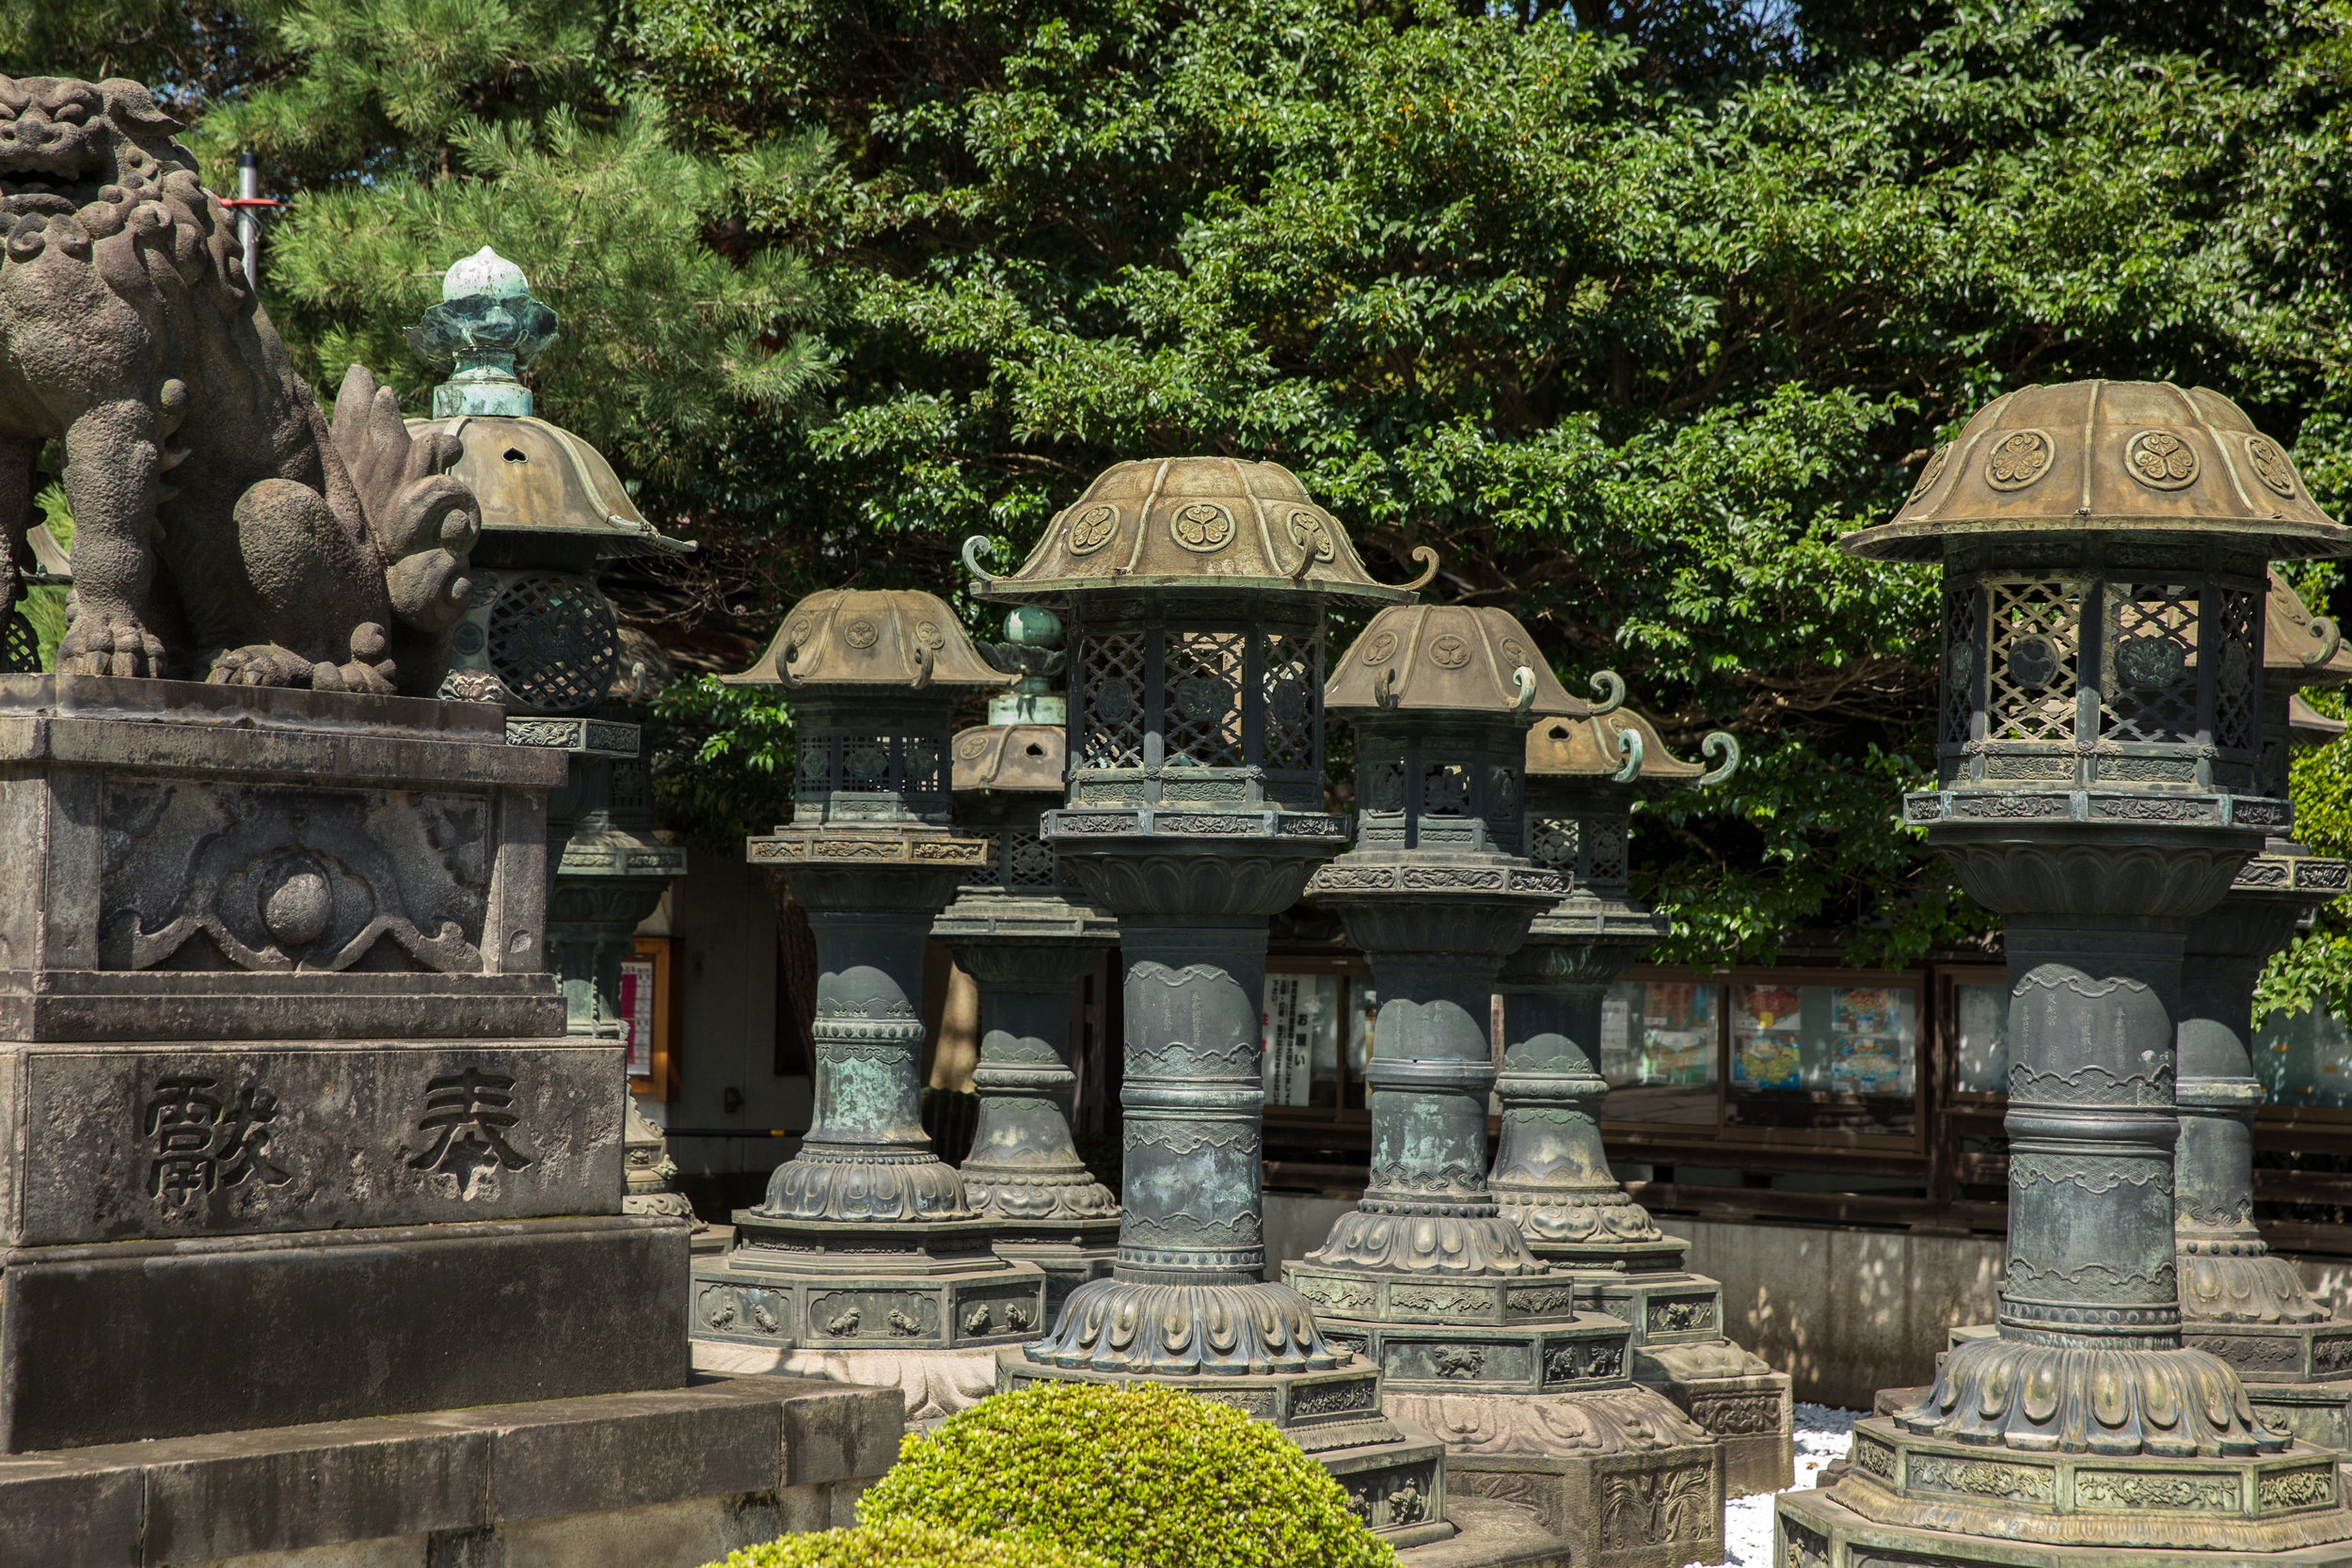 The 50 copper lanterns at Toshogushaden Karamonmae and Sando are not used for illumination. Instead they were built as offerings to the Daimyos (feudal lords) from all over Japan. The name of each donor is written on the base, and is collectively a designated National Treasure of Japan.